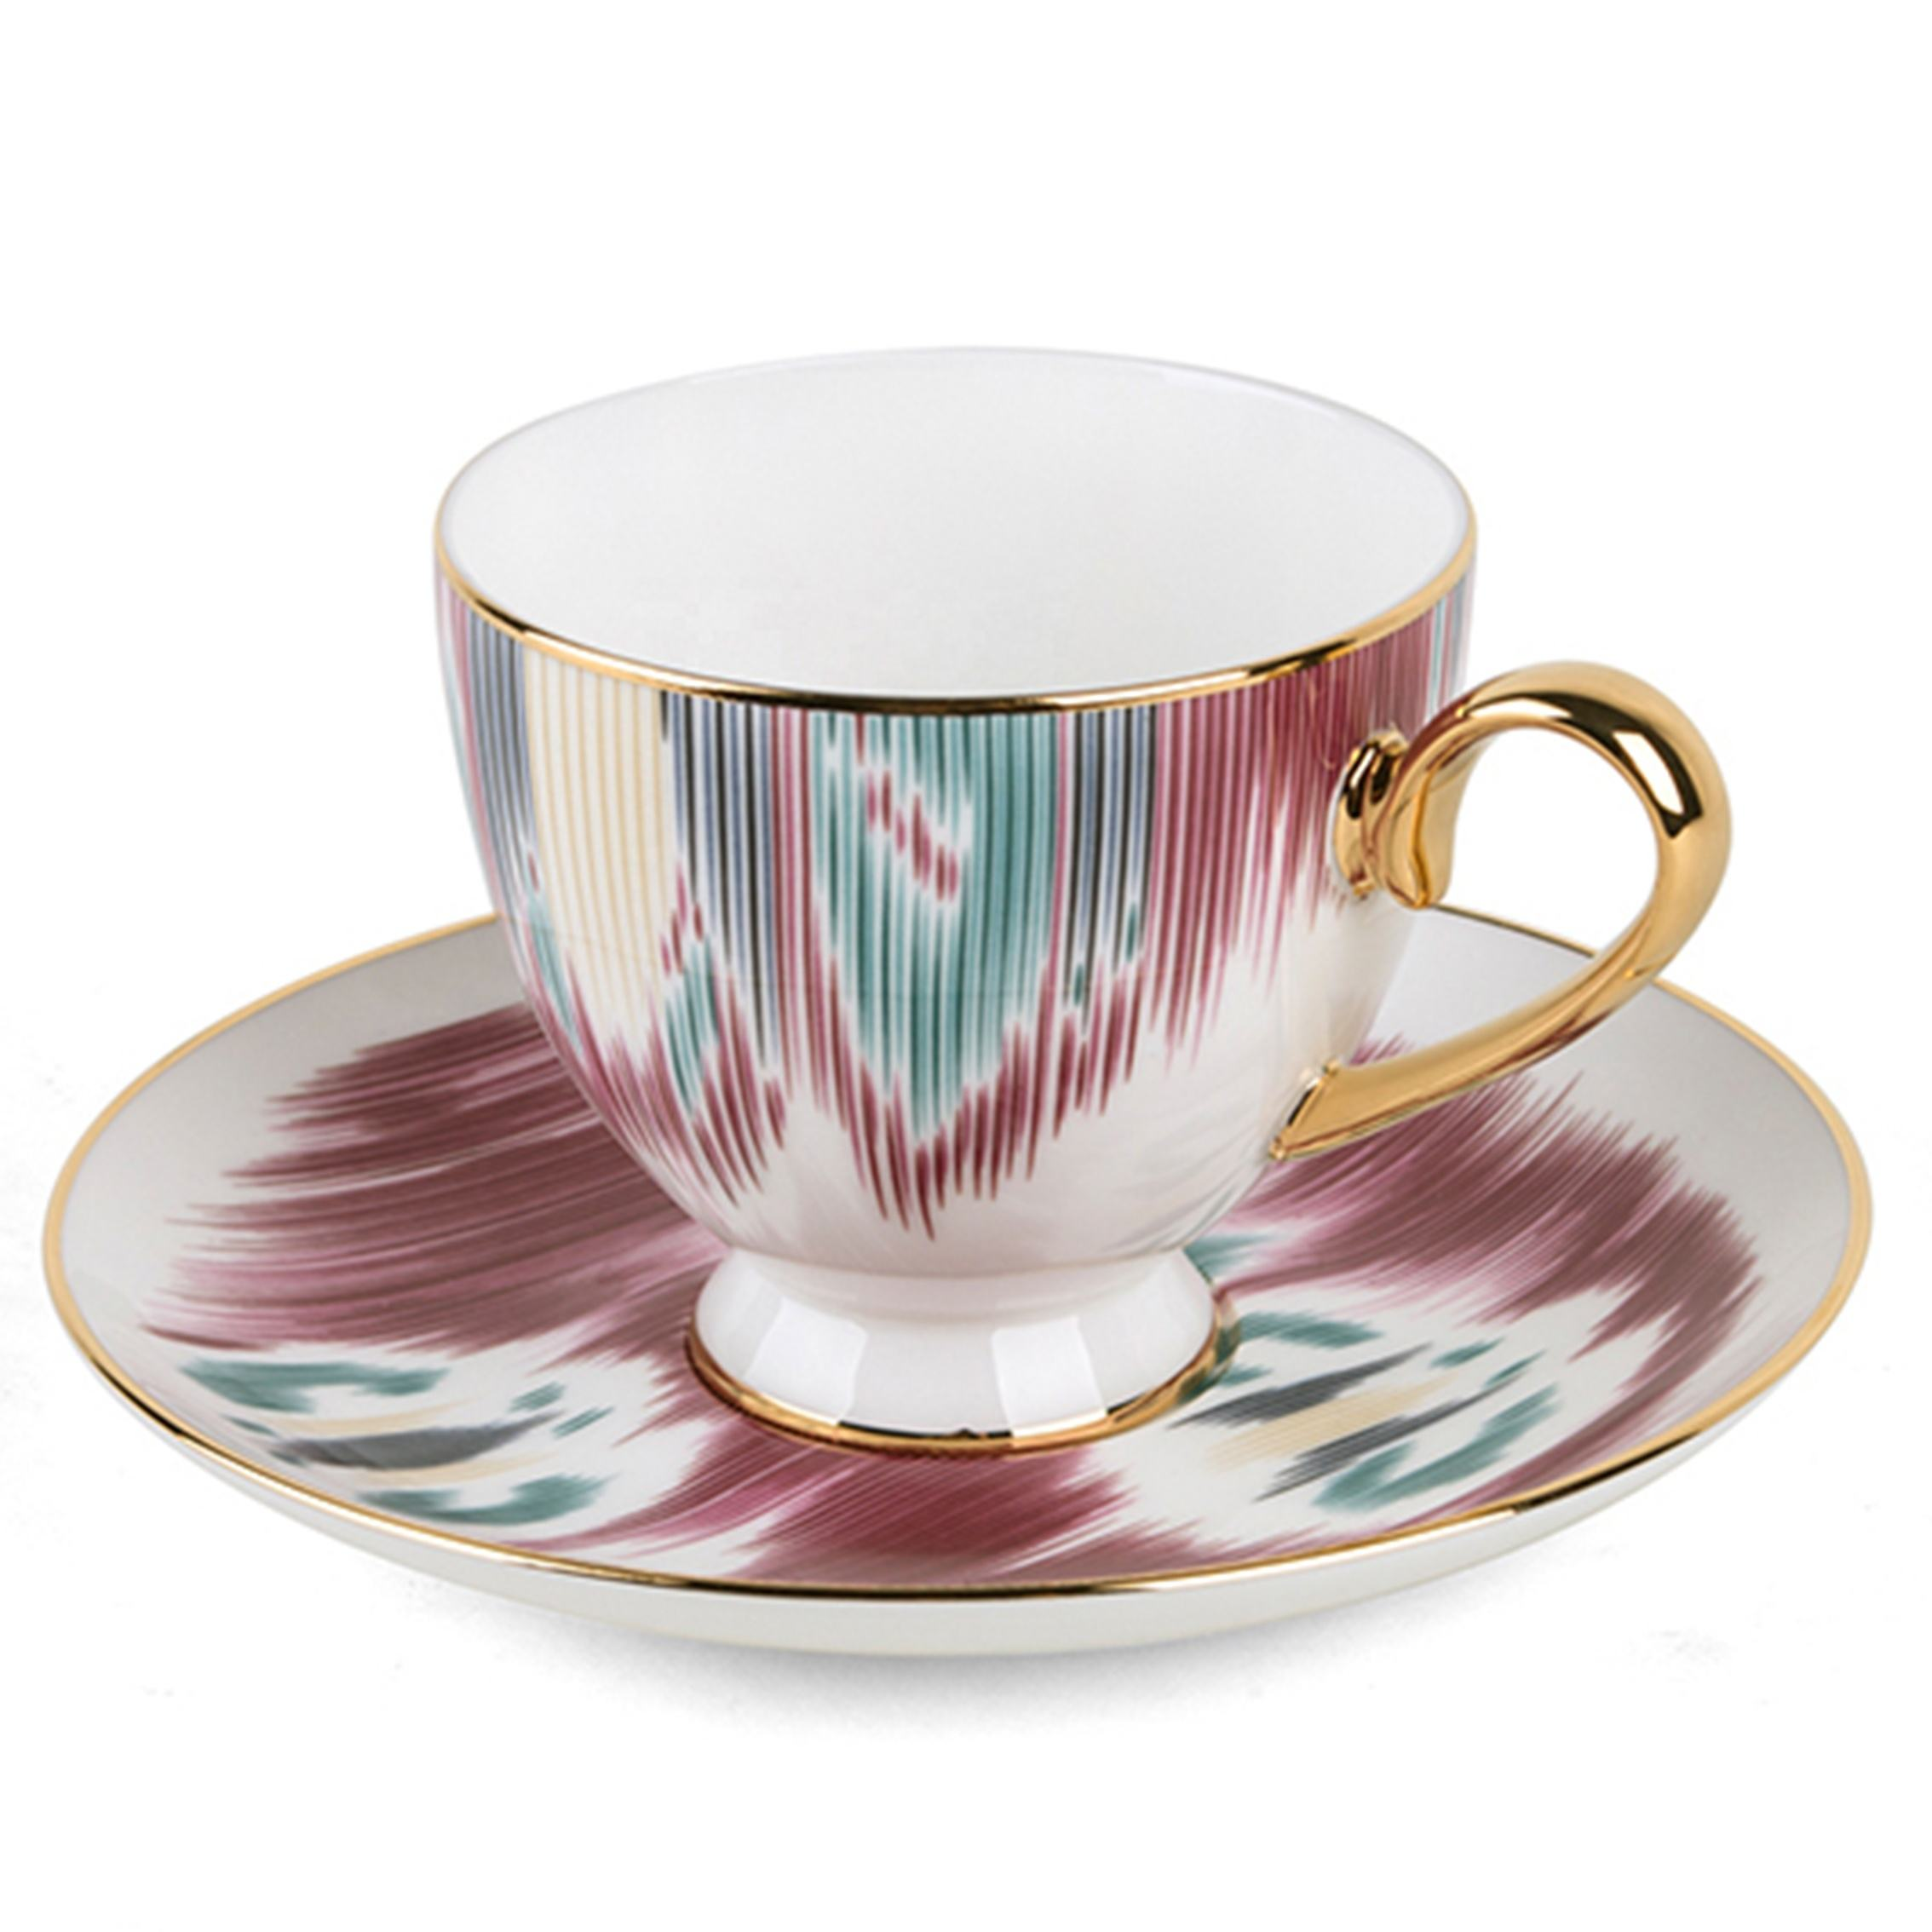 China Cup Saucers China Cup Saucers Manufacturers And Suppliers On Alibaba Com